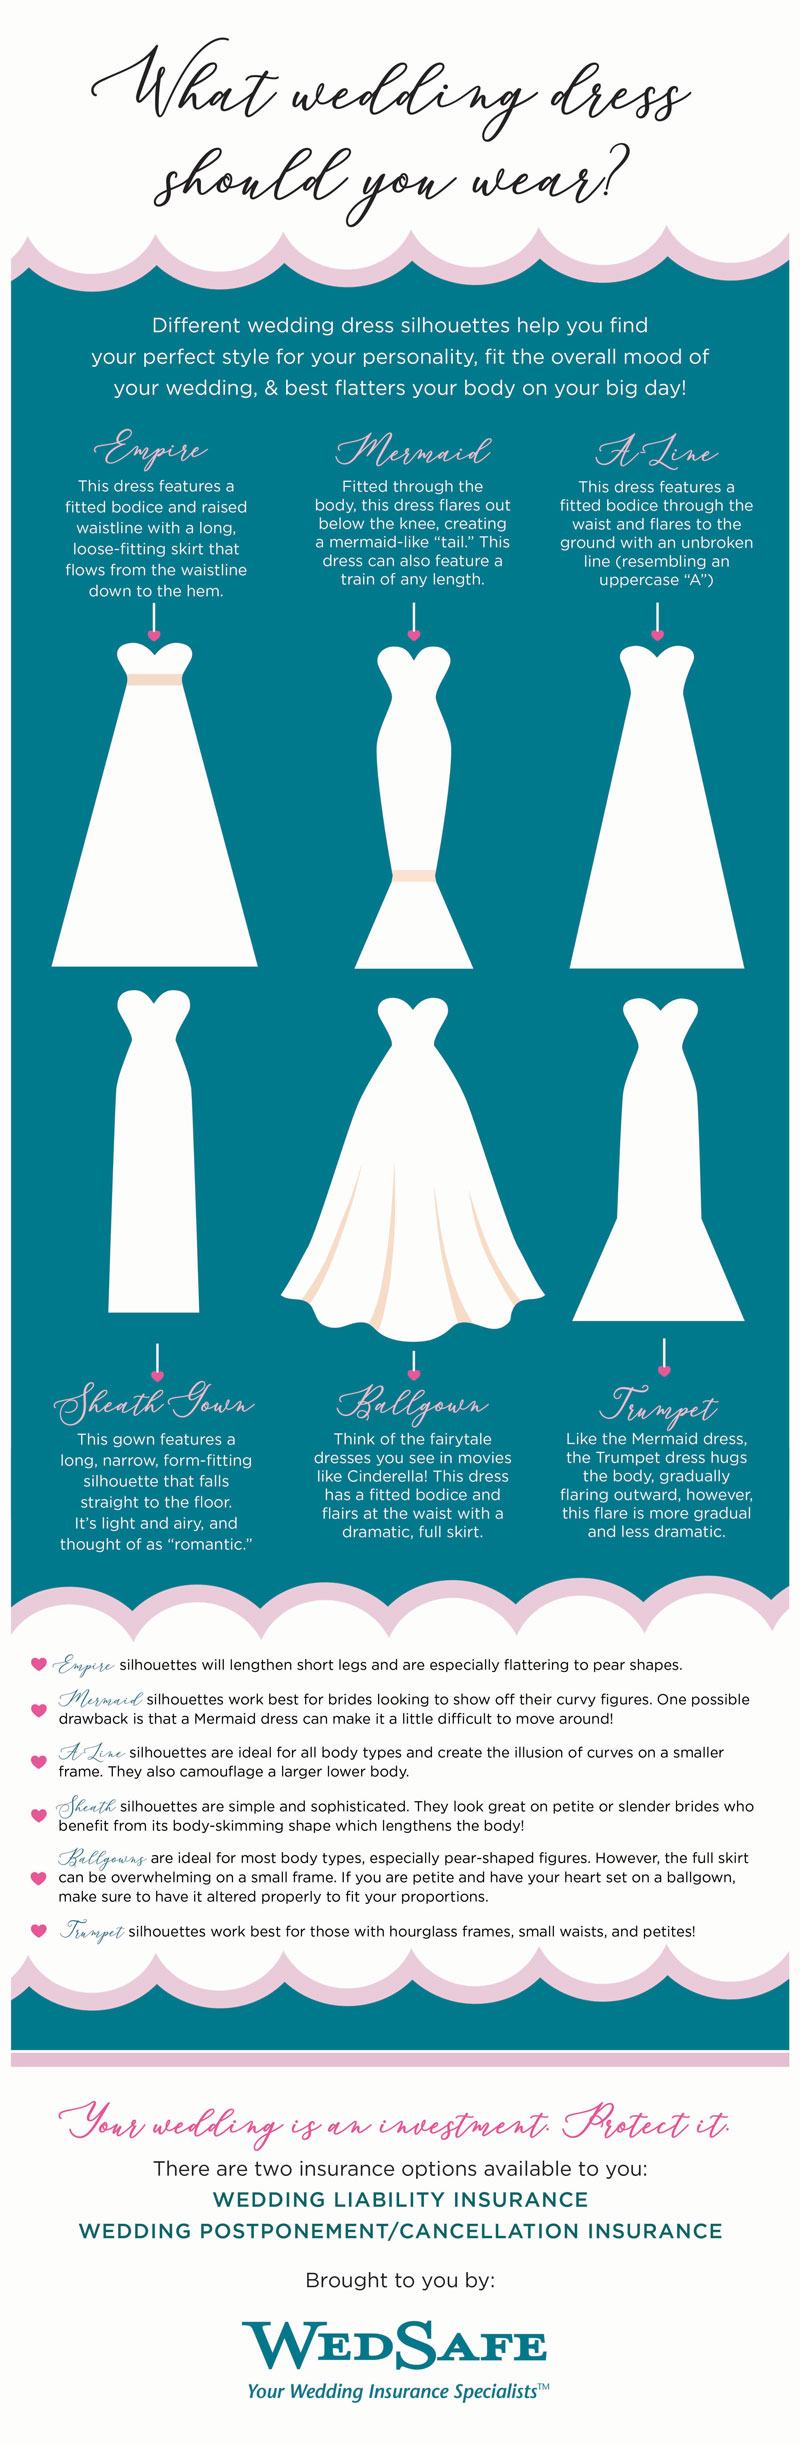 Wedding Dress Styles - An Overview and 6 Bonus Tips for Selecting the Perfect Wedding Dress!